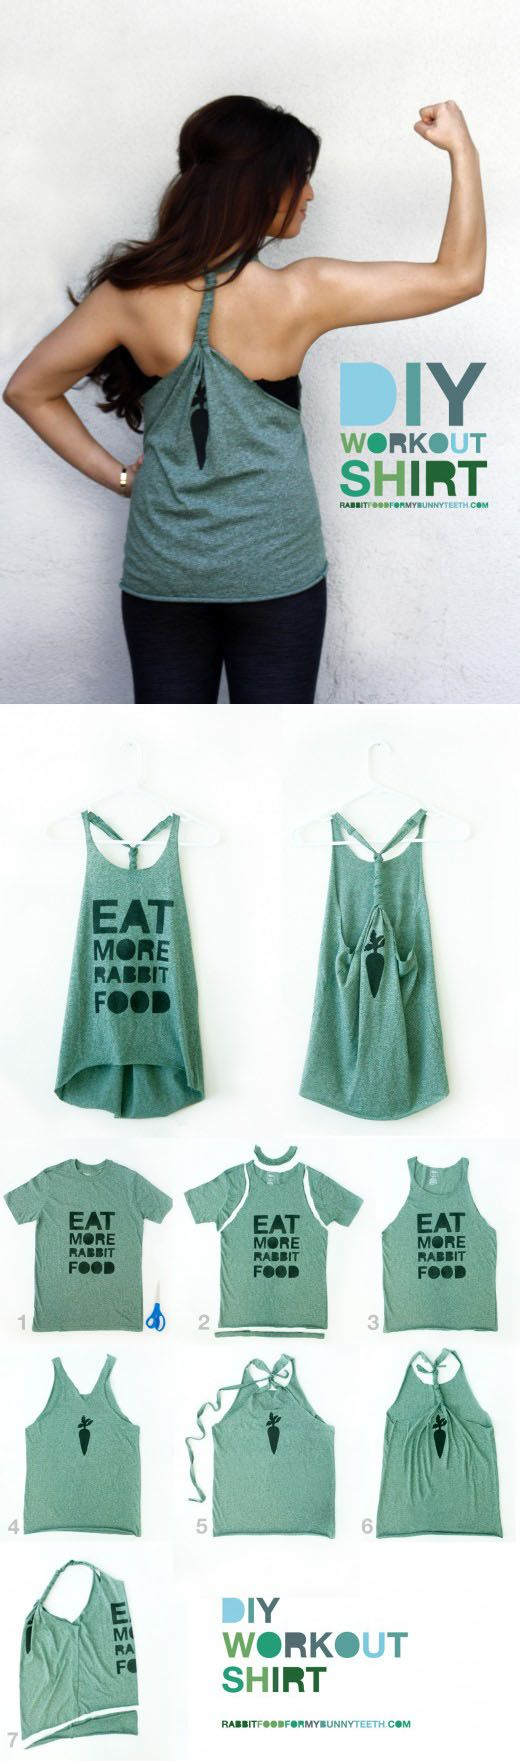 DIY Workout Shirt..just made this from an old high school shirt :)